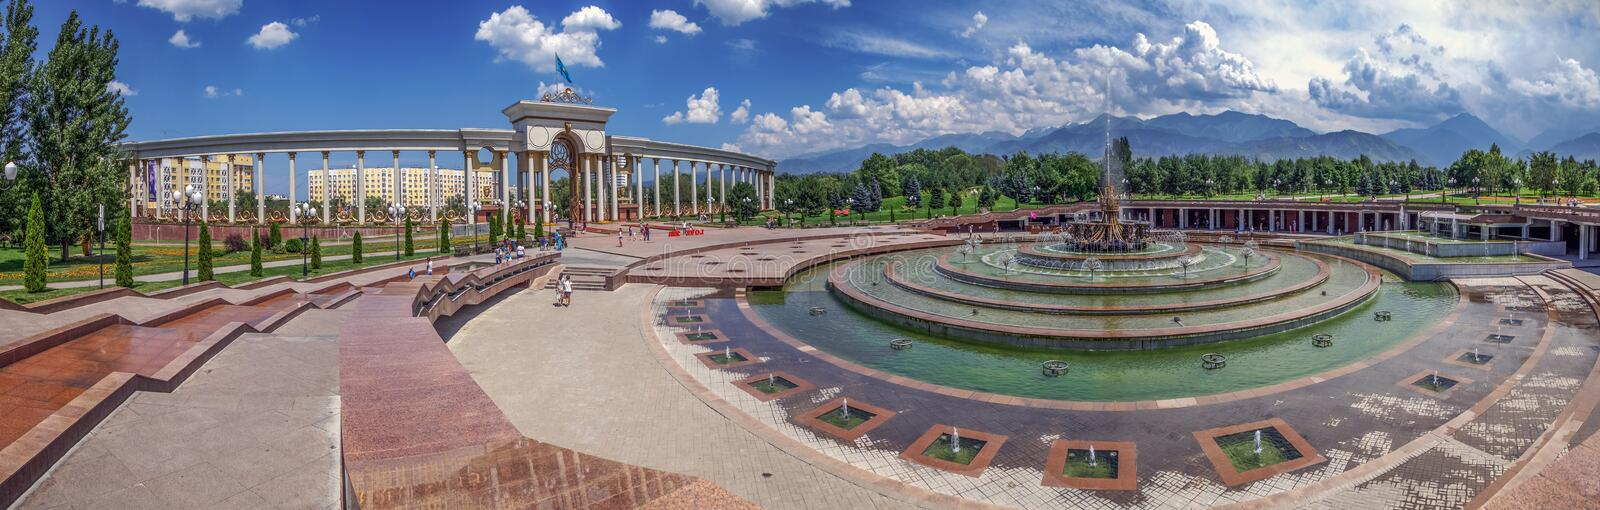 ALMATY, KAZAKHSTAN - JULY 10, 2016: Panorama of the First President`s Park. stock photography